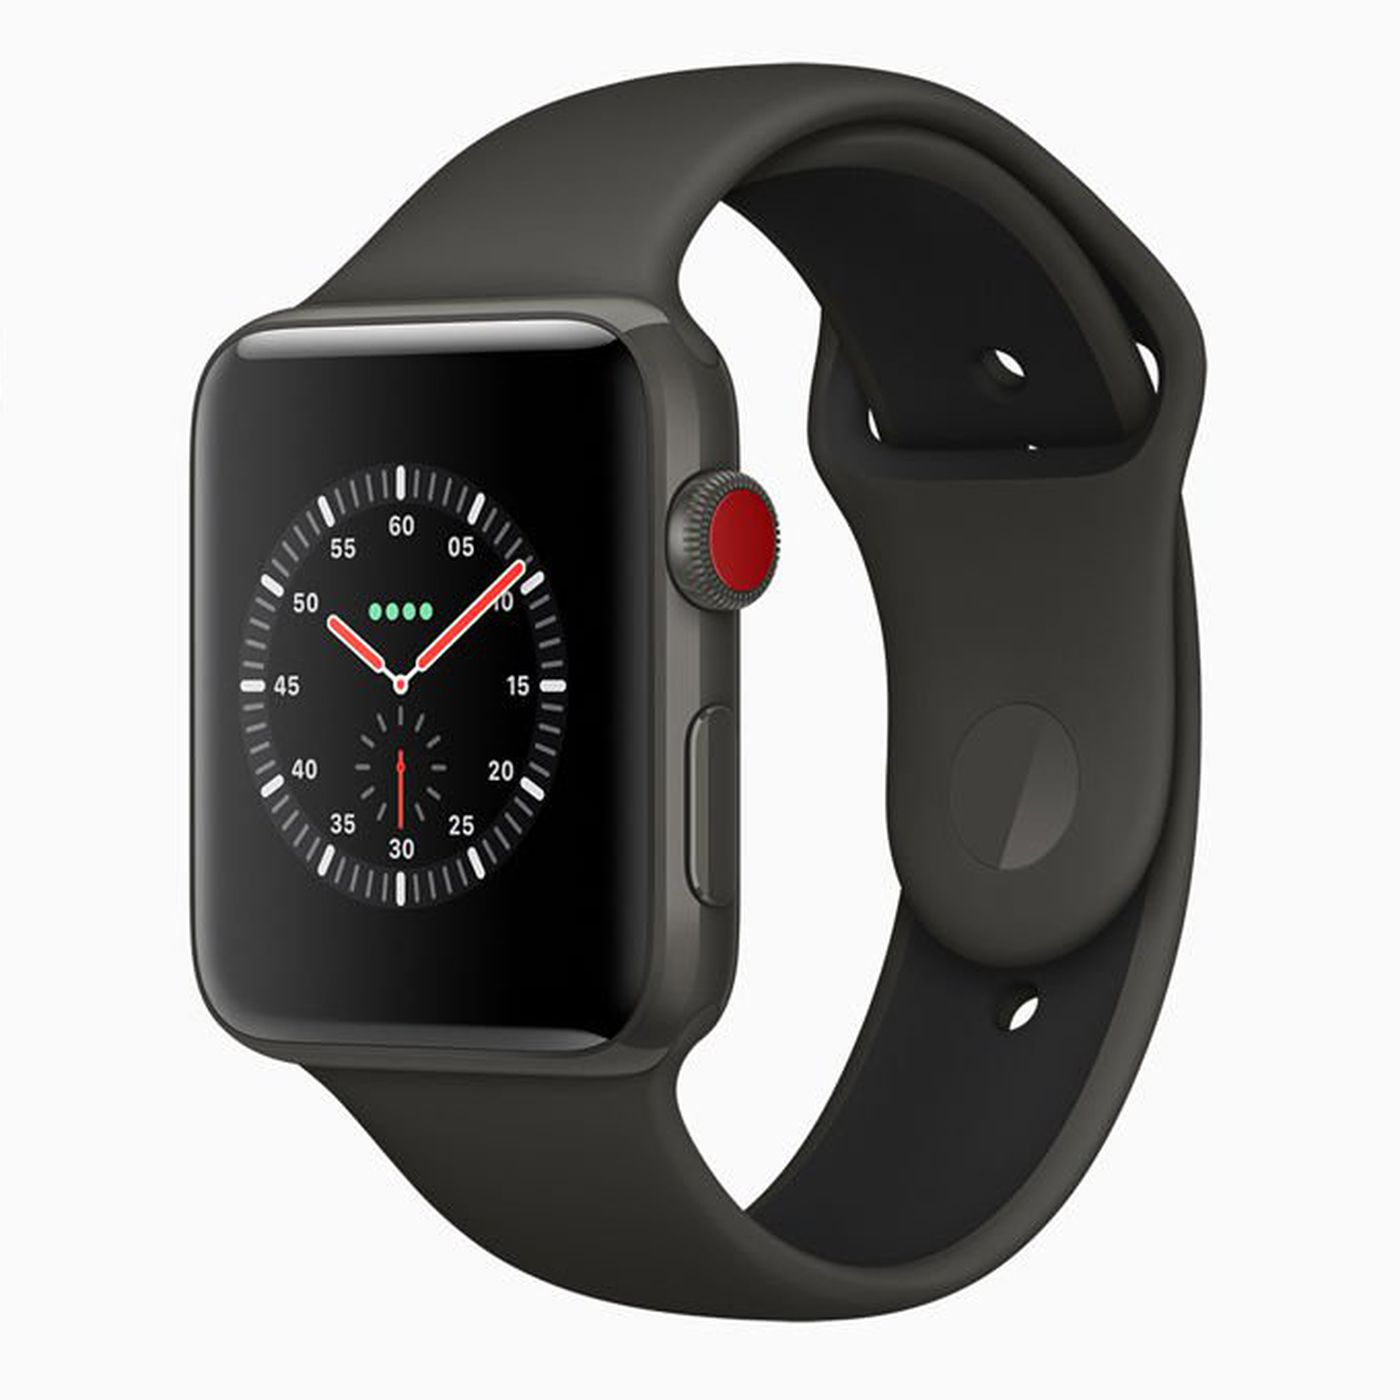 theverge.com - Chris Welch - The Apple Watch Edition is dead